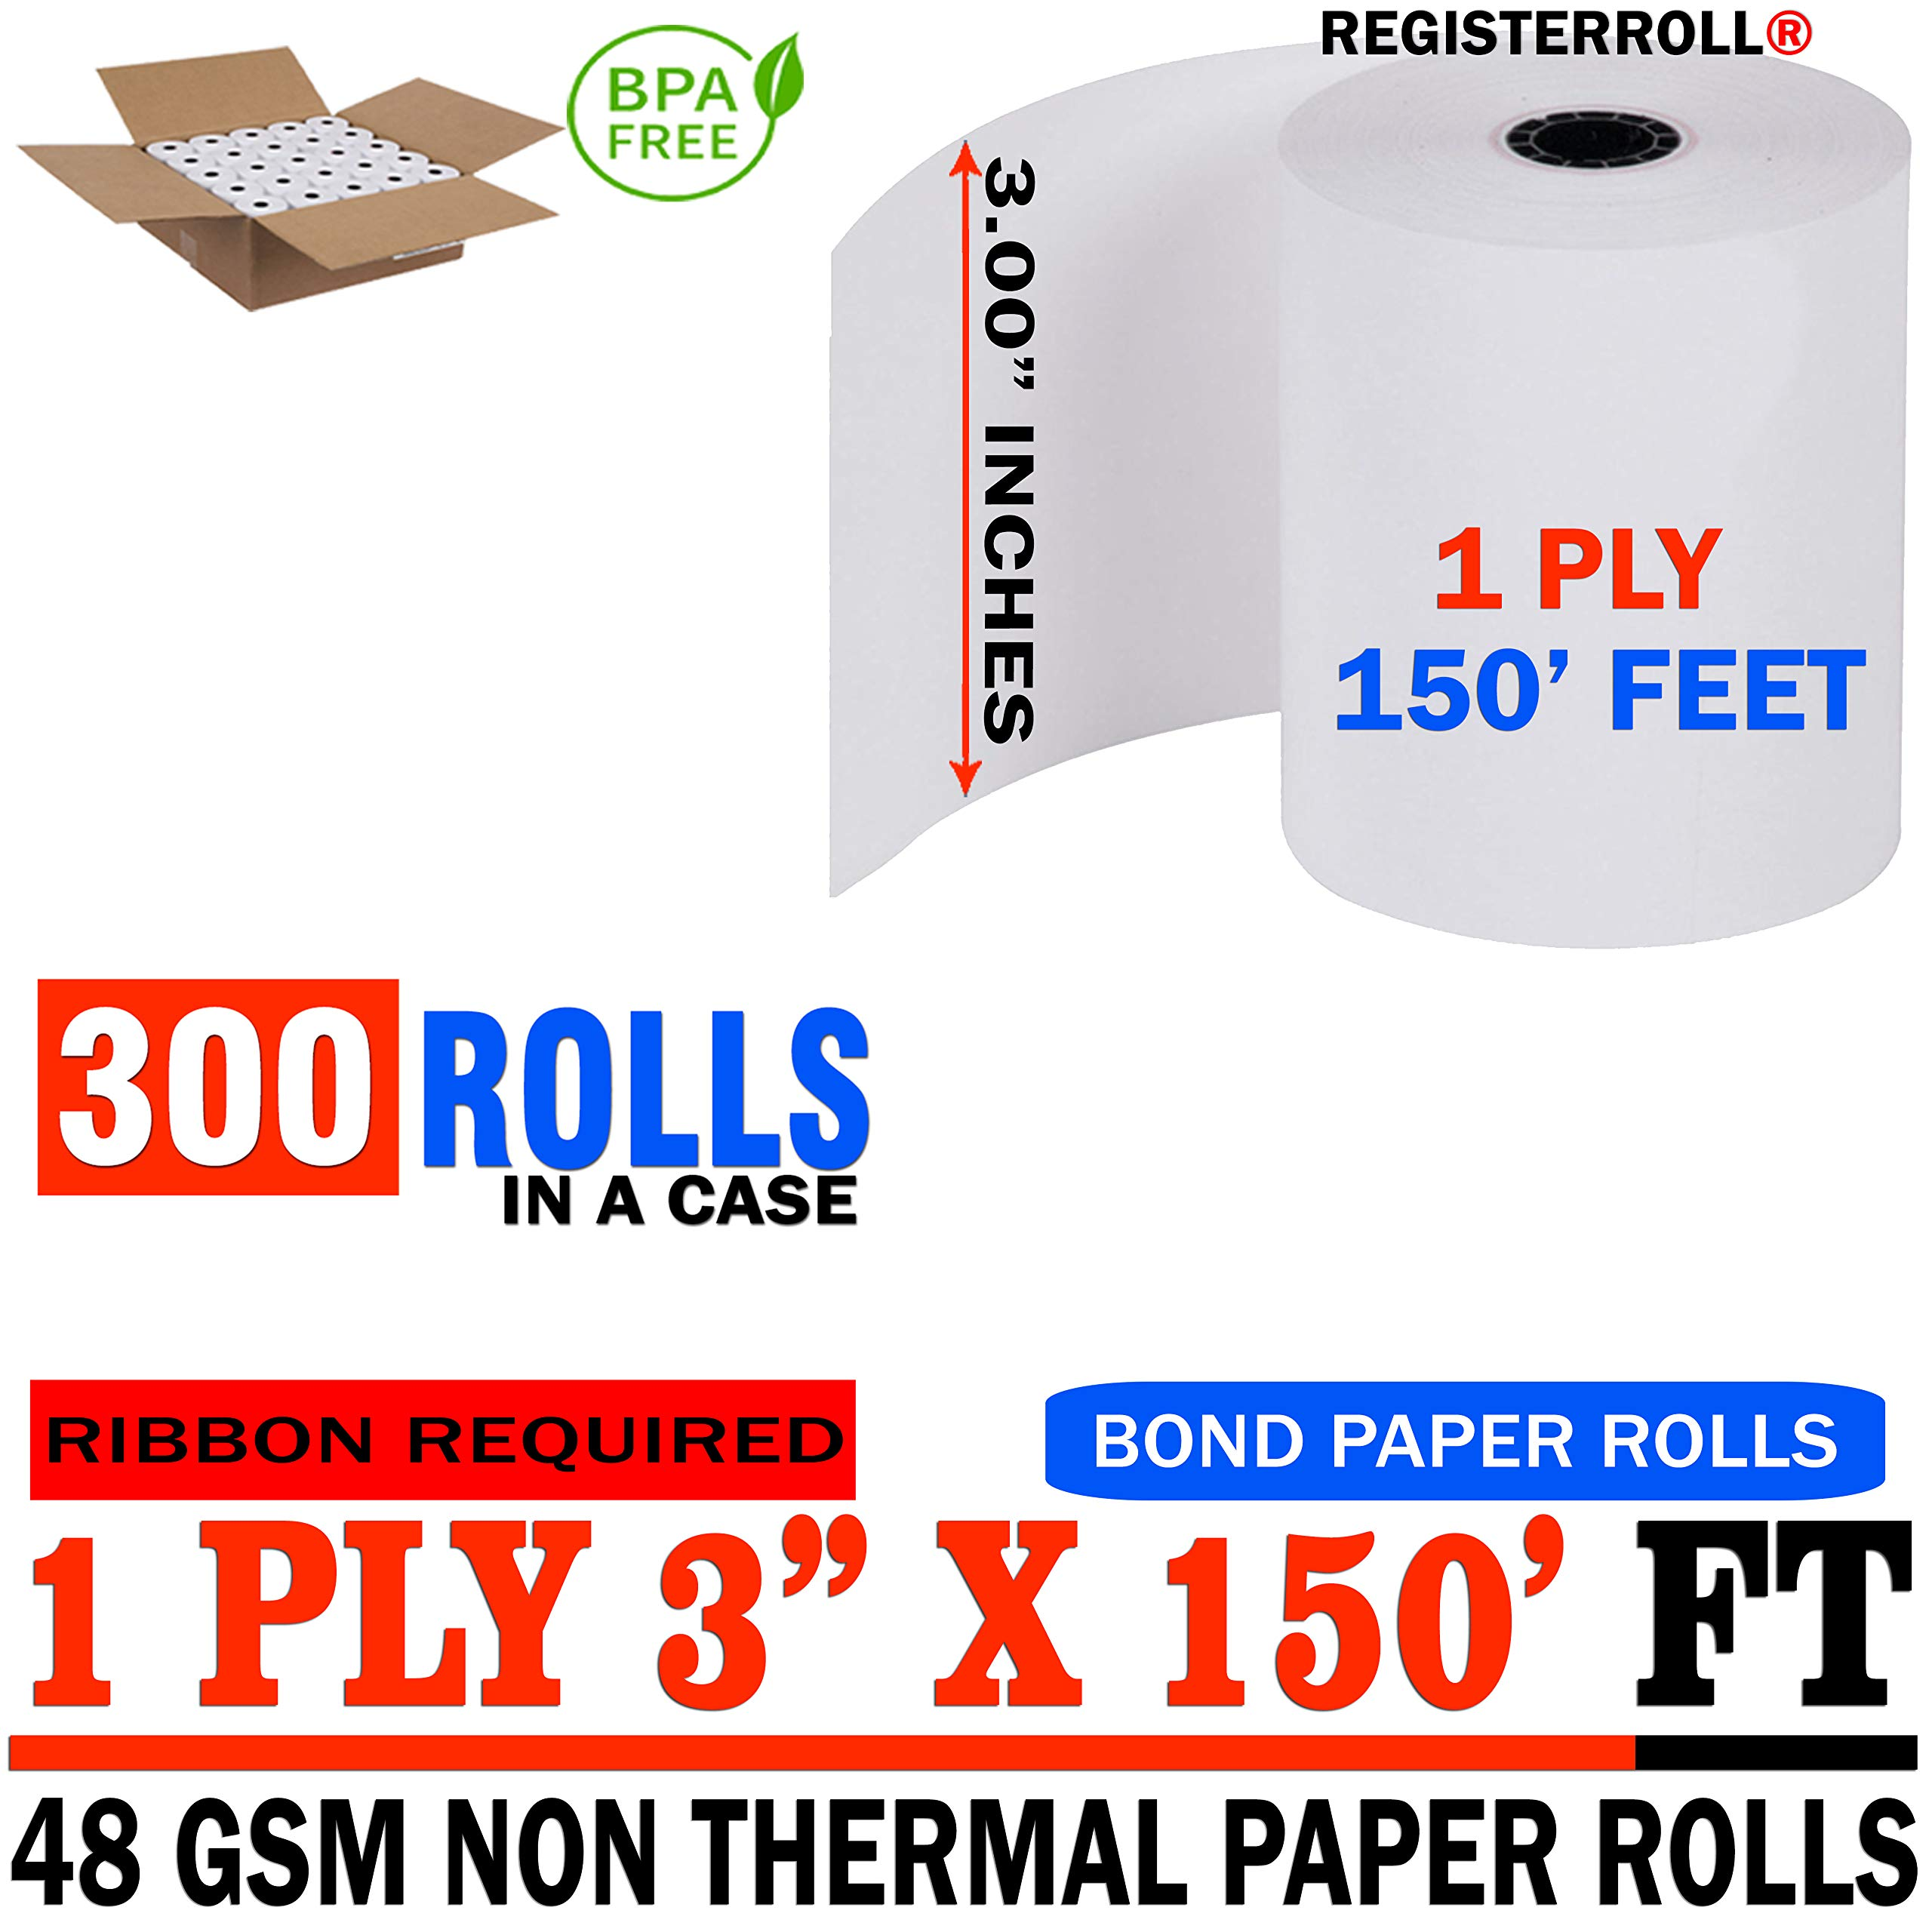 3'' x 150' 1-Ply Bond (300 Rolls), Works for Epson TM-U200B, Epson TM-U200D, Epson TM-U210, Epson TM-U220 - RegisterRoll Same Day (300 Rolls)